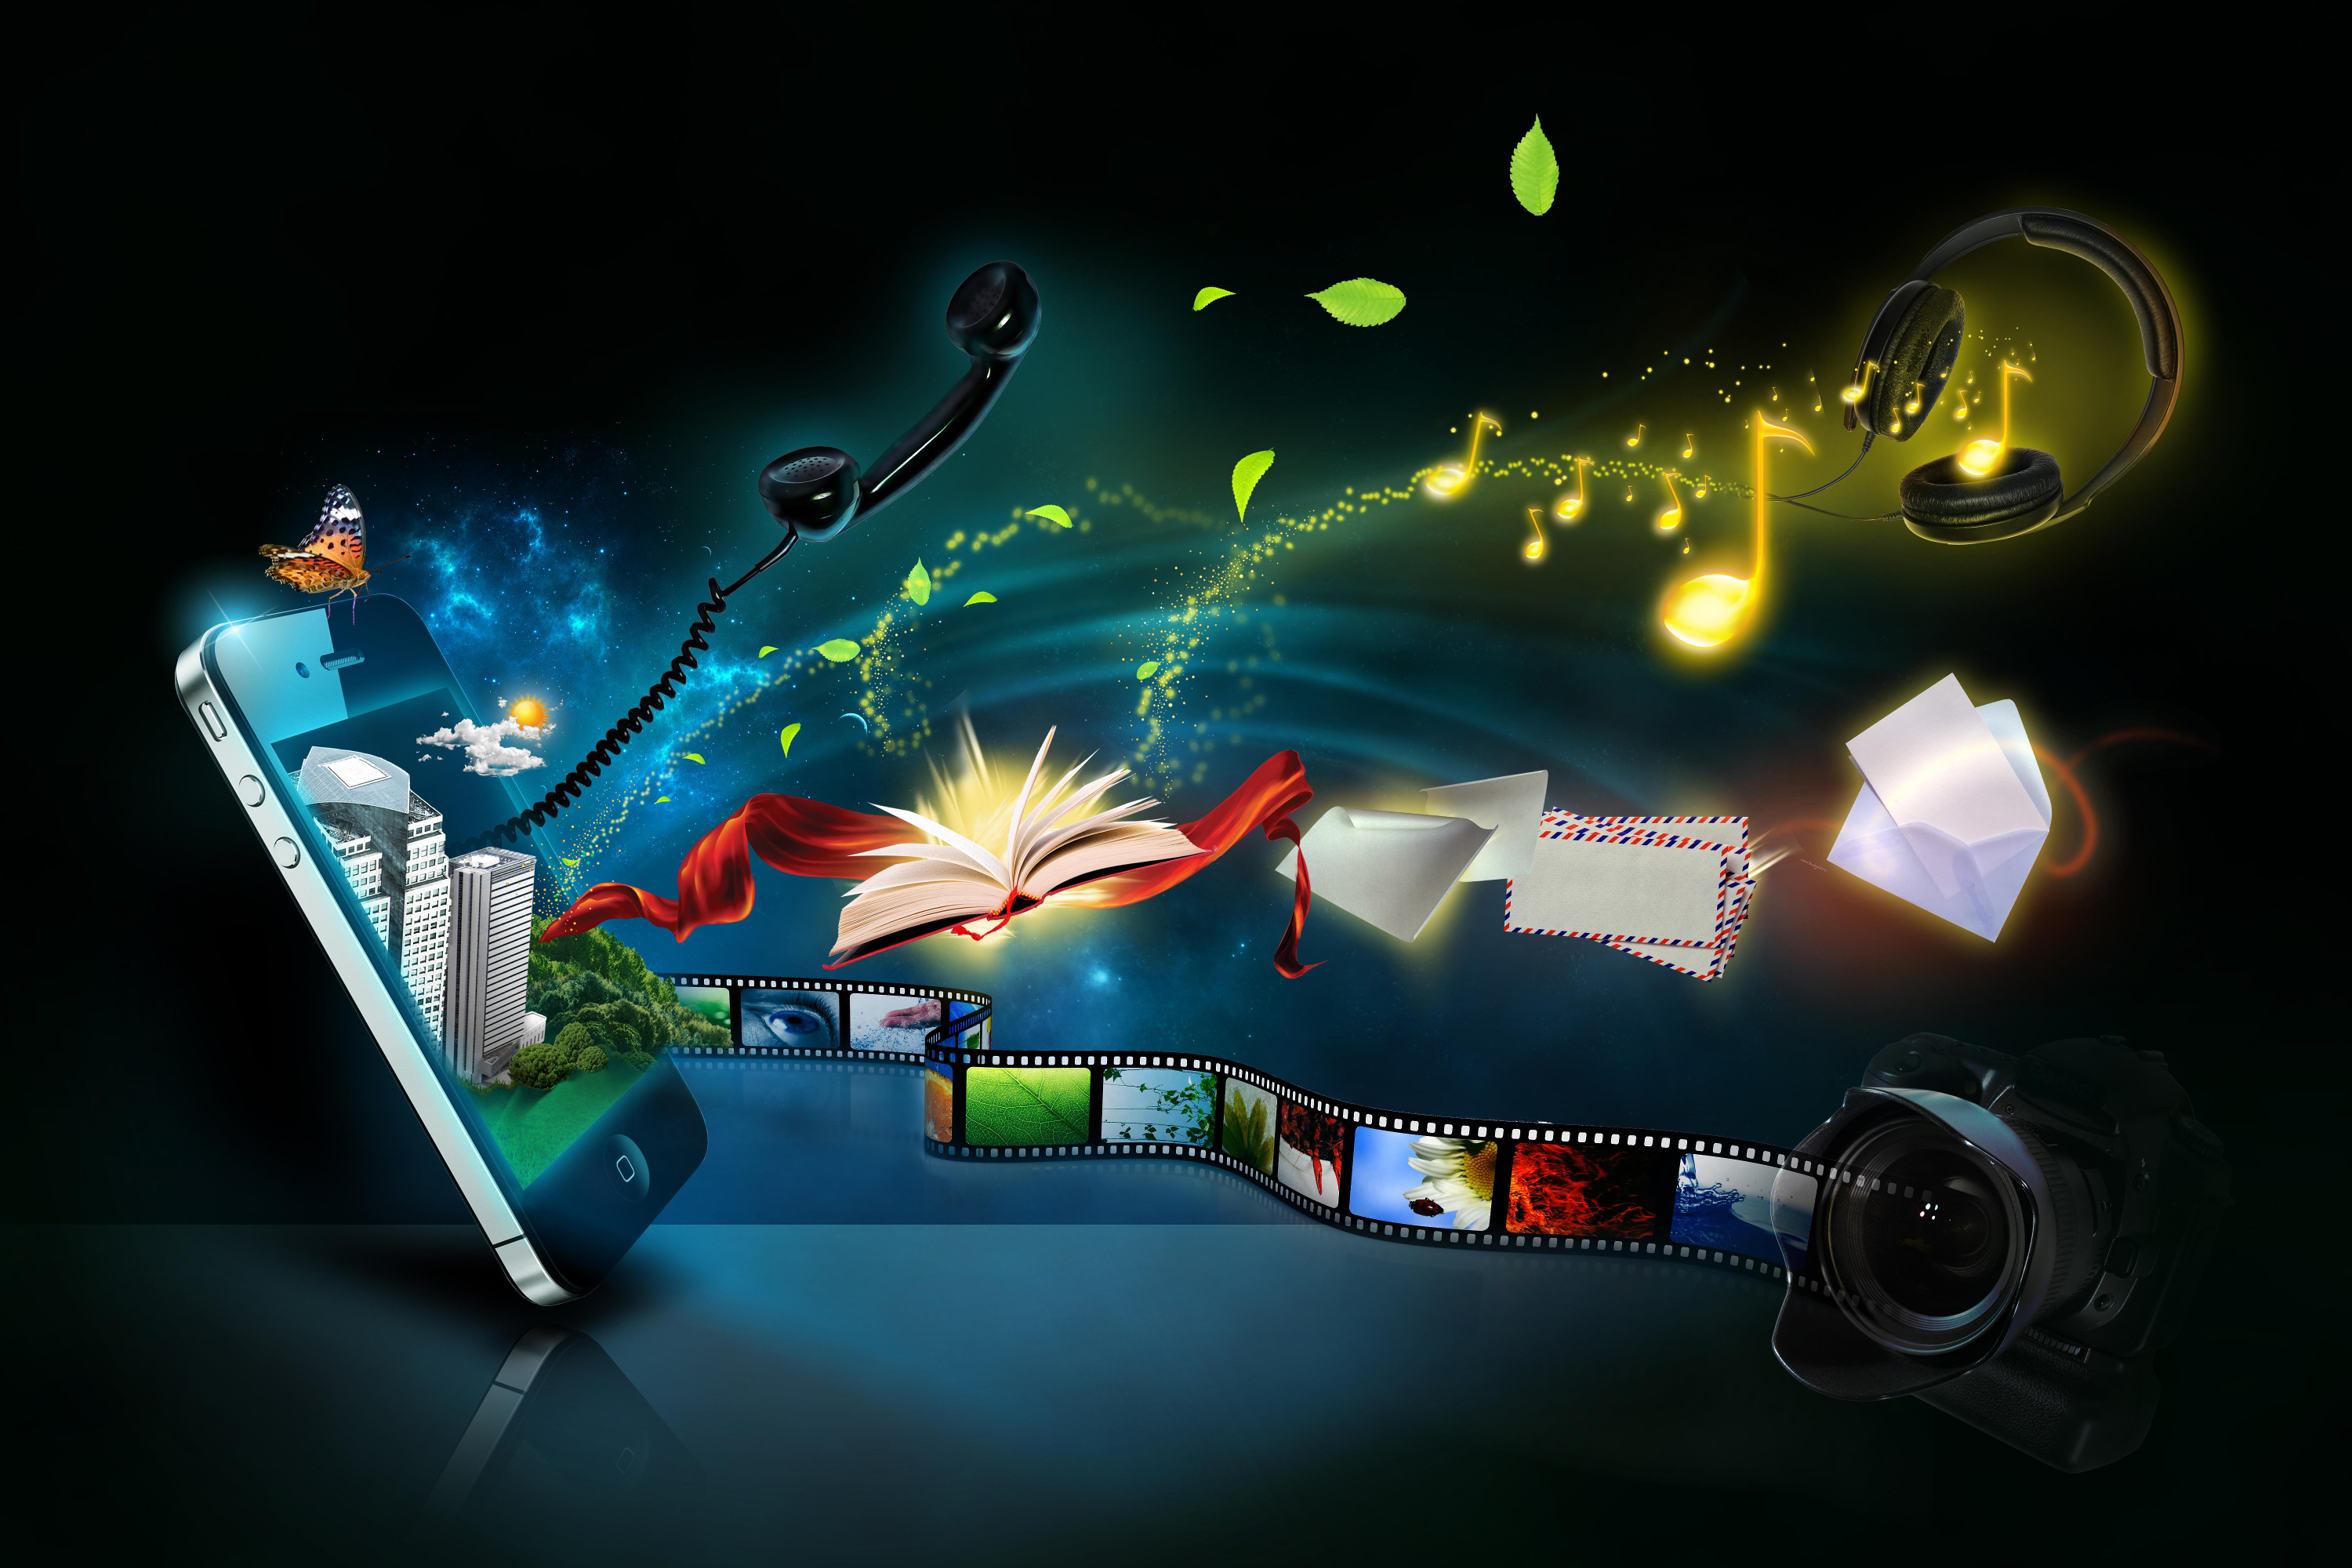 Hd wallpaper for tablet - Hd Wallpaper Background Id 715333